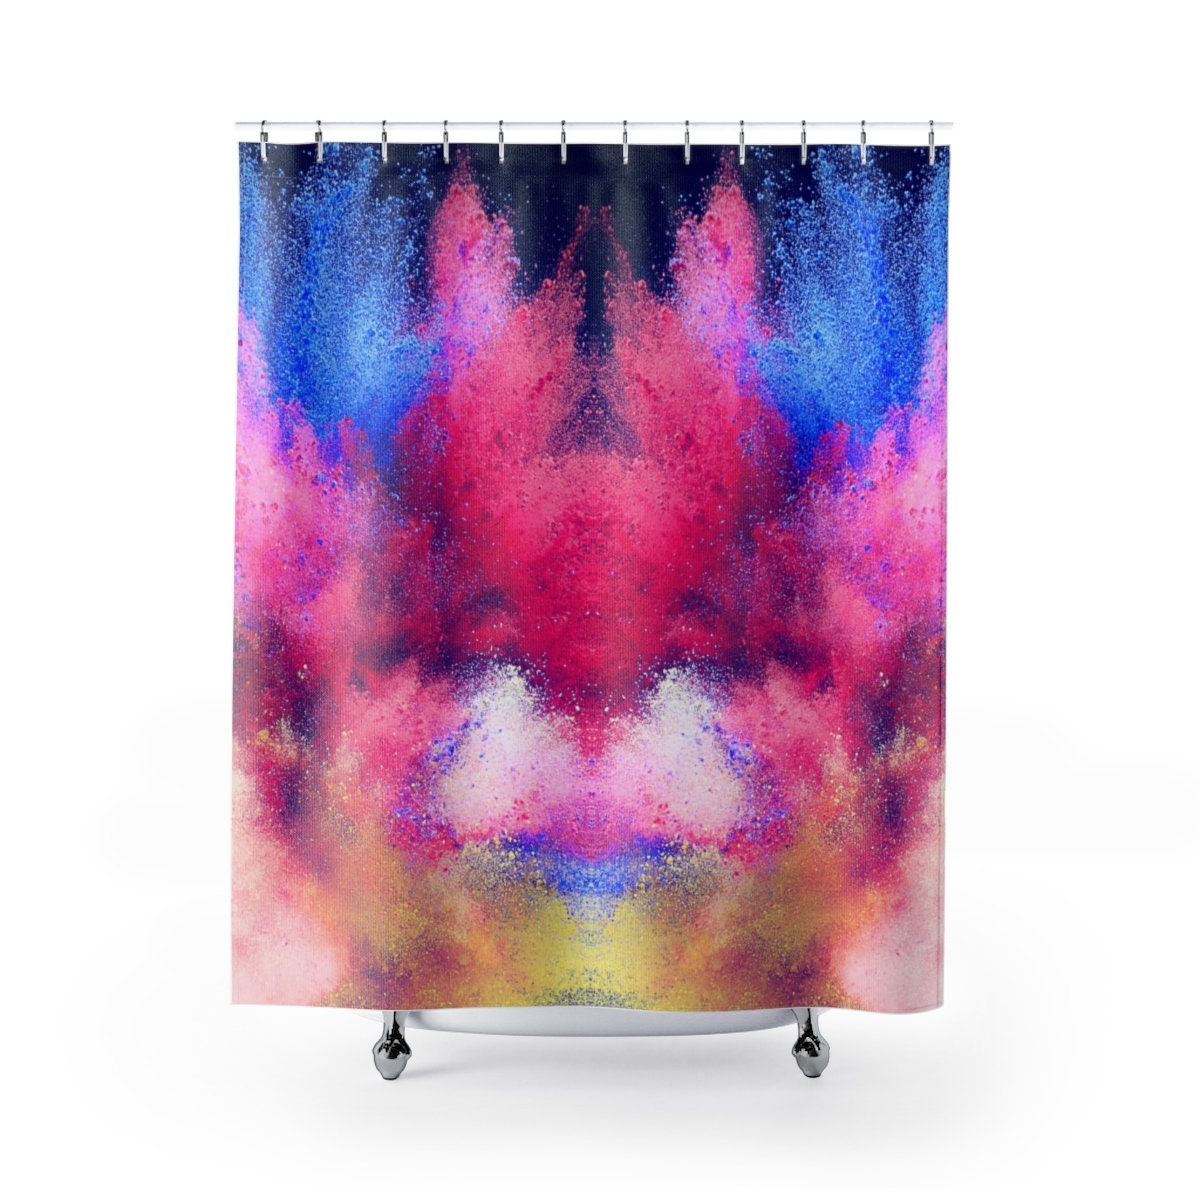 Colorful Shower Curtain Artistic Creative